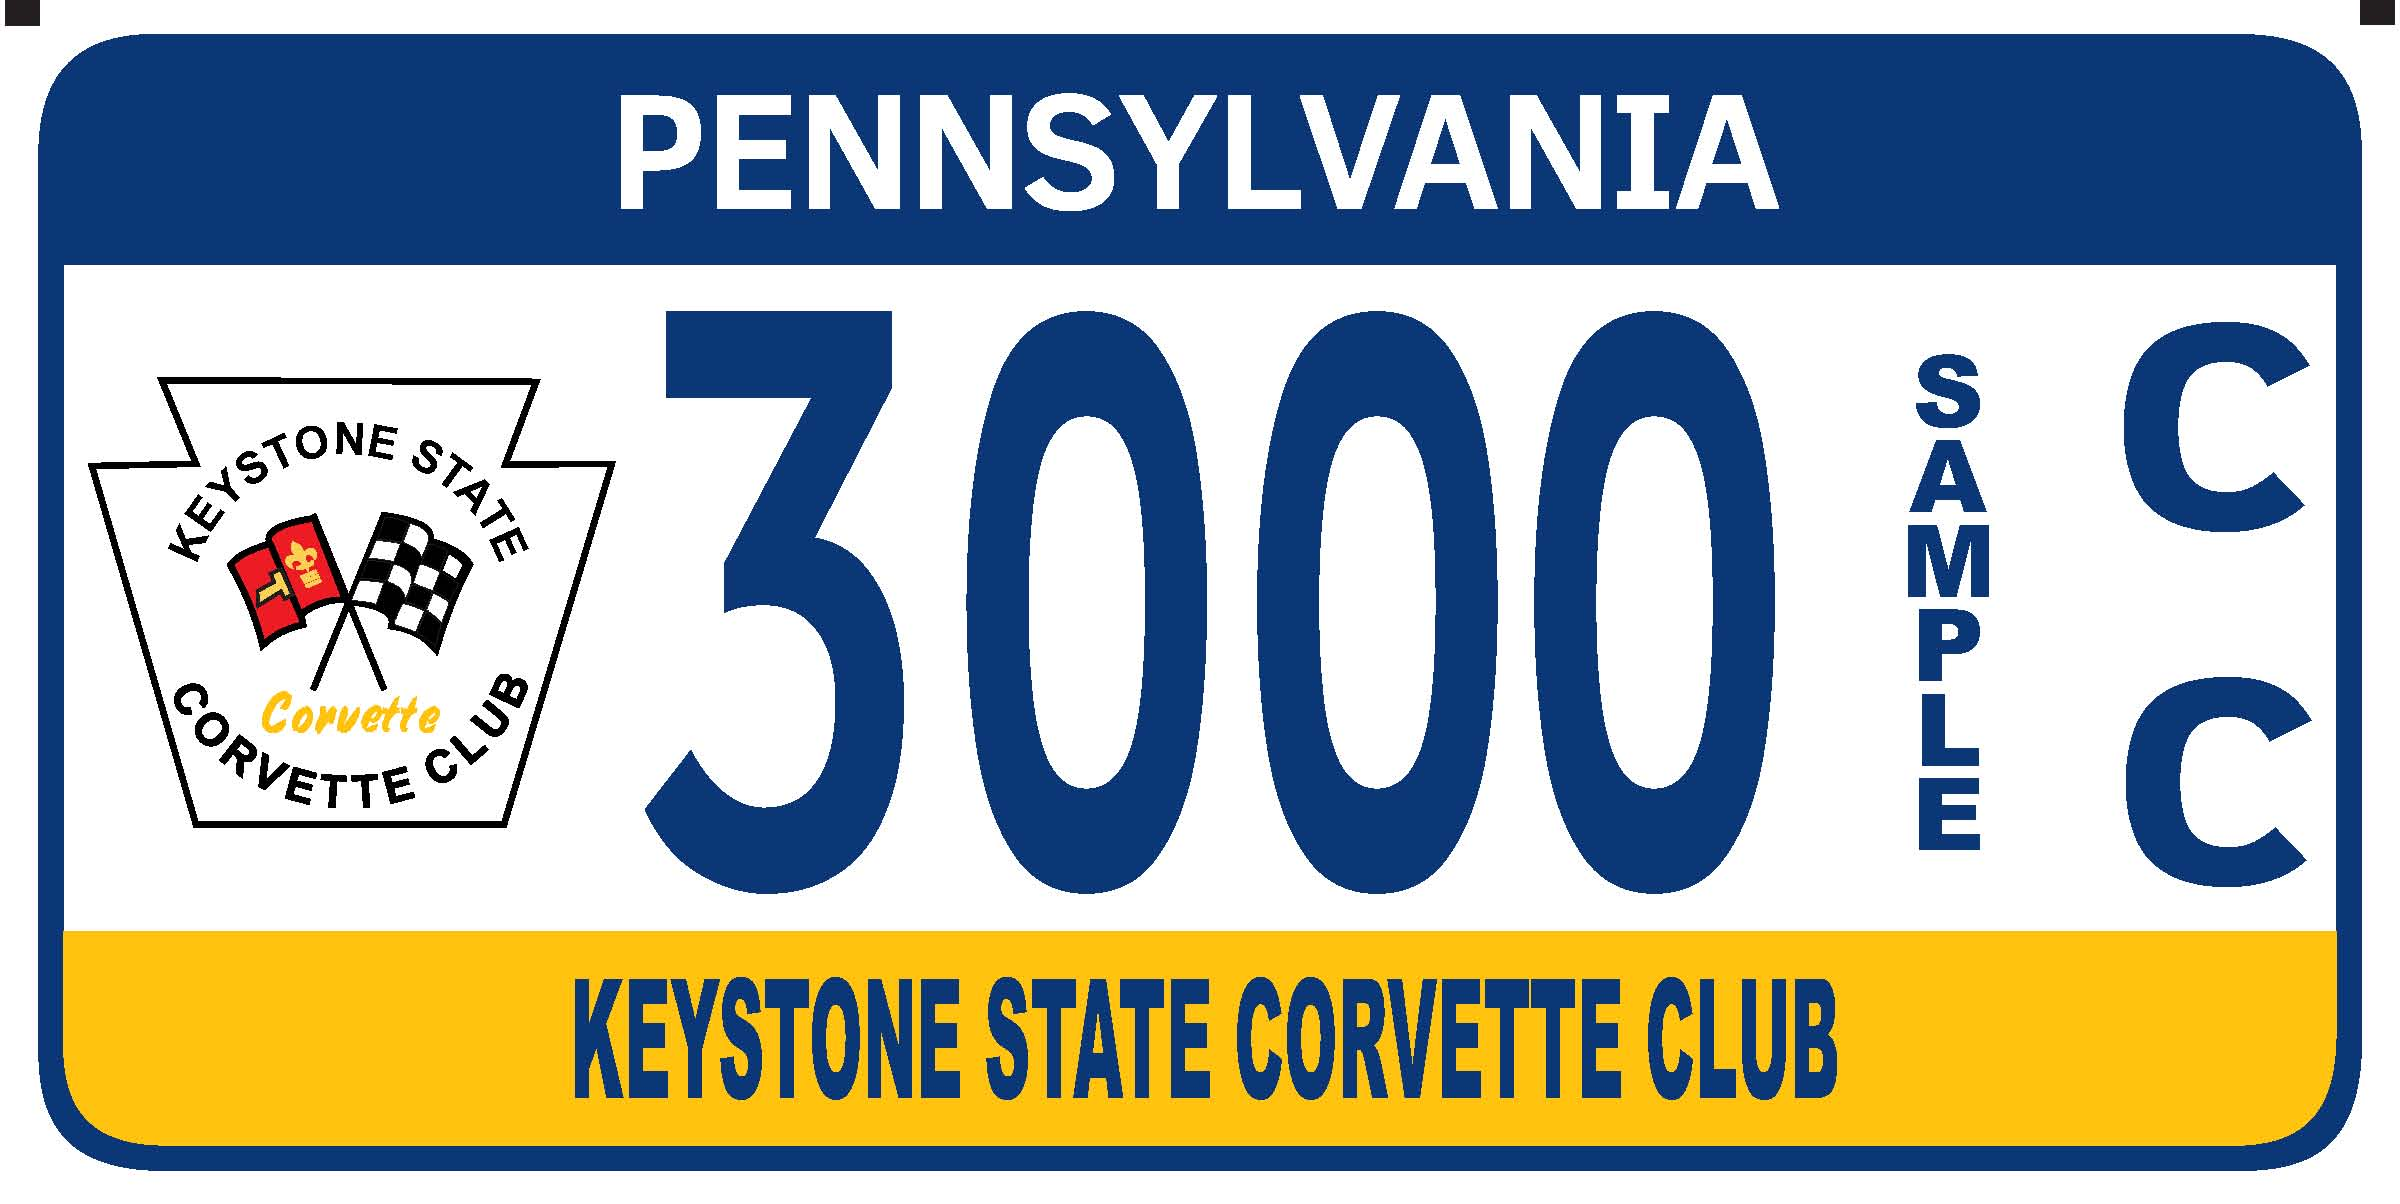 Keystone State Corvette Club